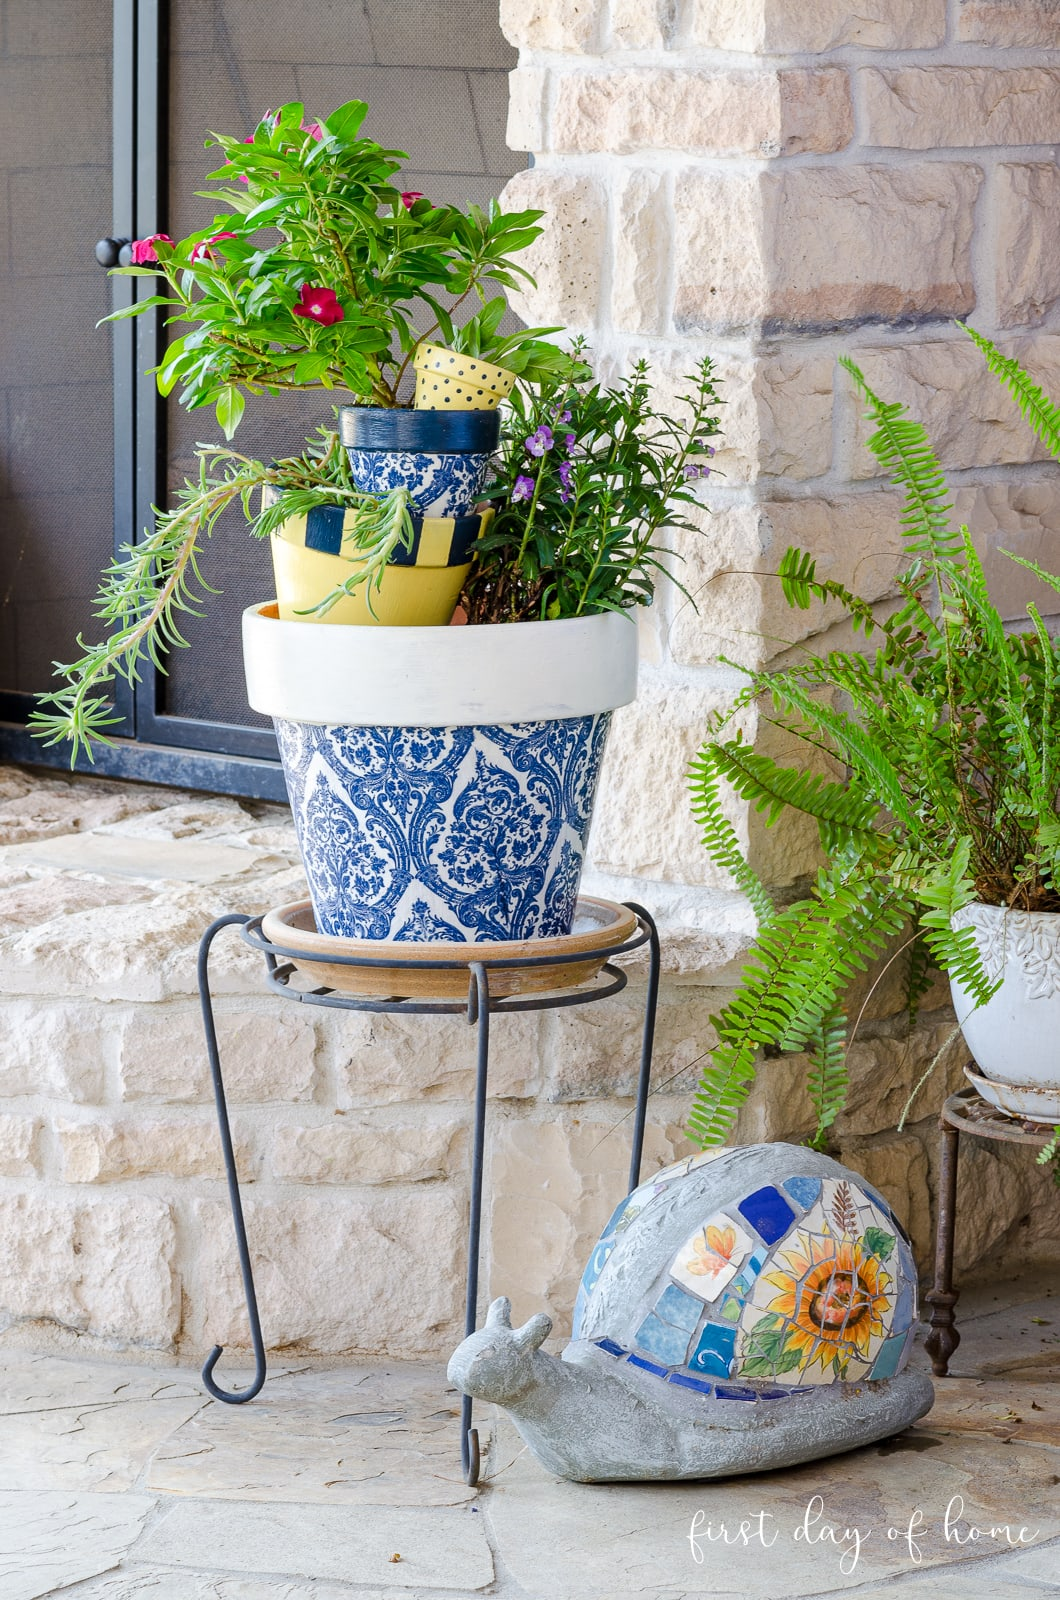 Stacked decoupage flower pots by outdoor fireplace with mosaic snail and other potted plants